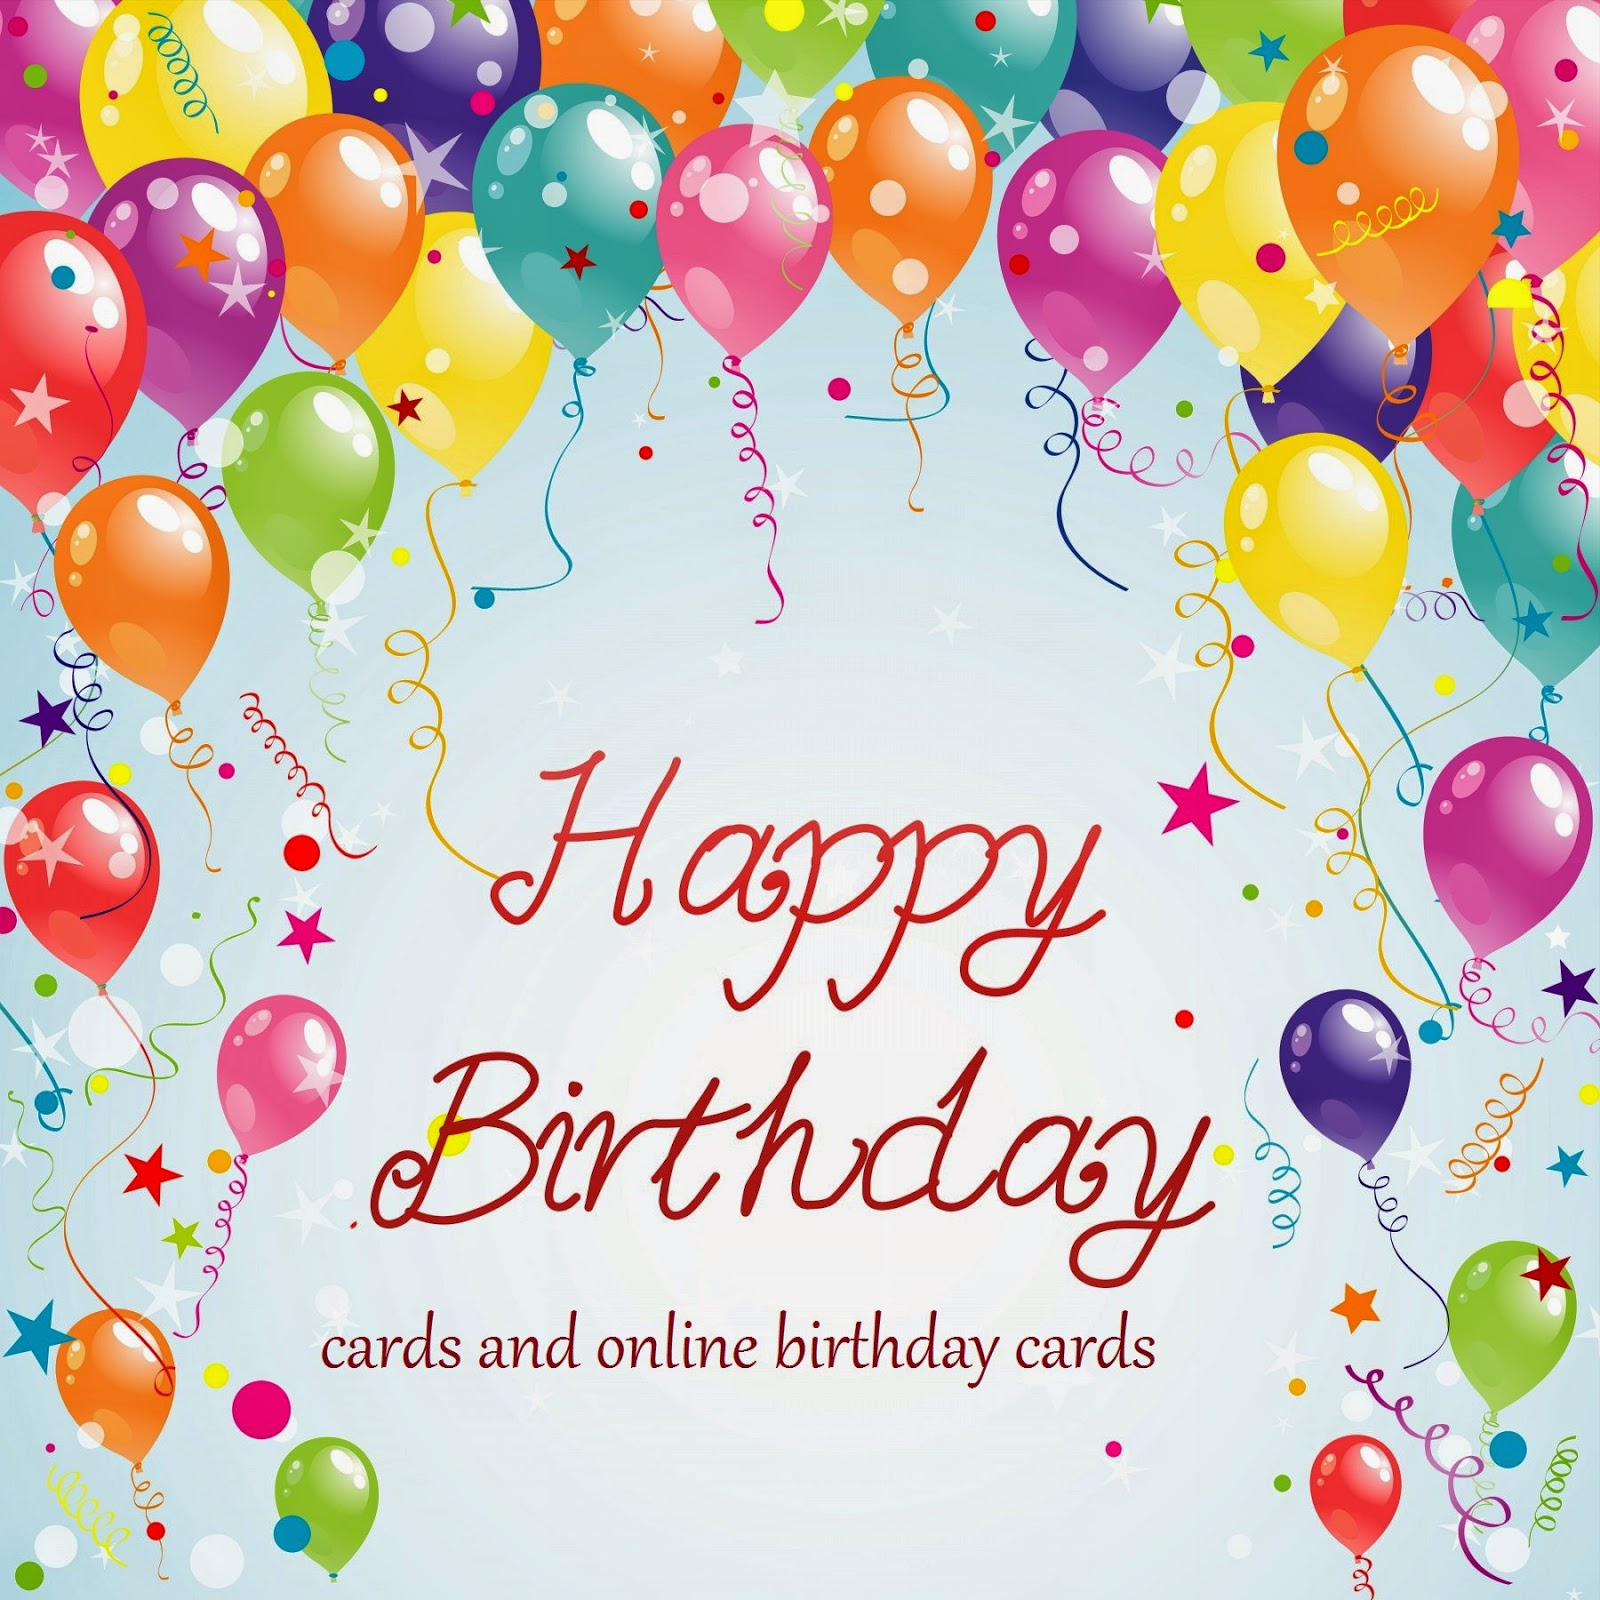 Online birthday card free tiredriveeasy online birthday card free bookmarktalkfo Images